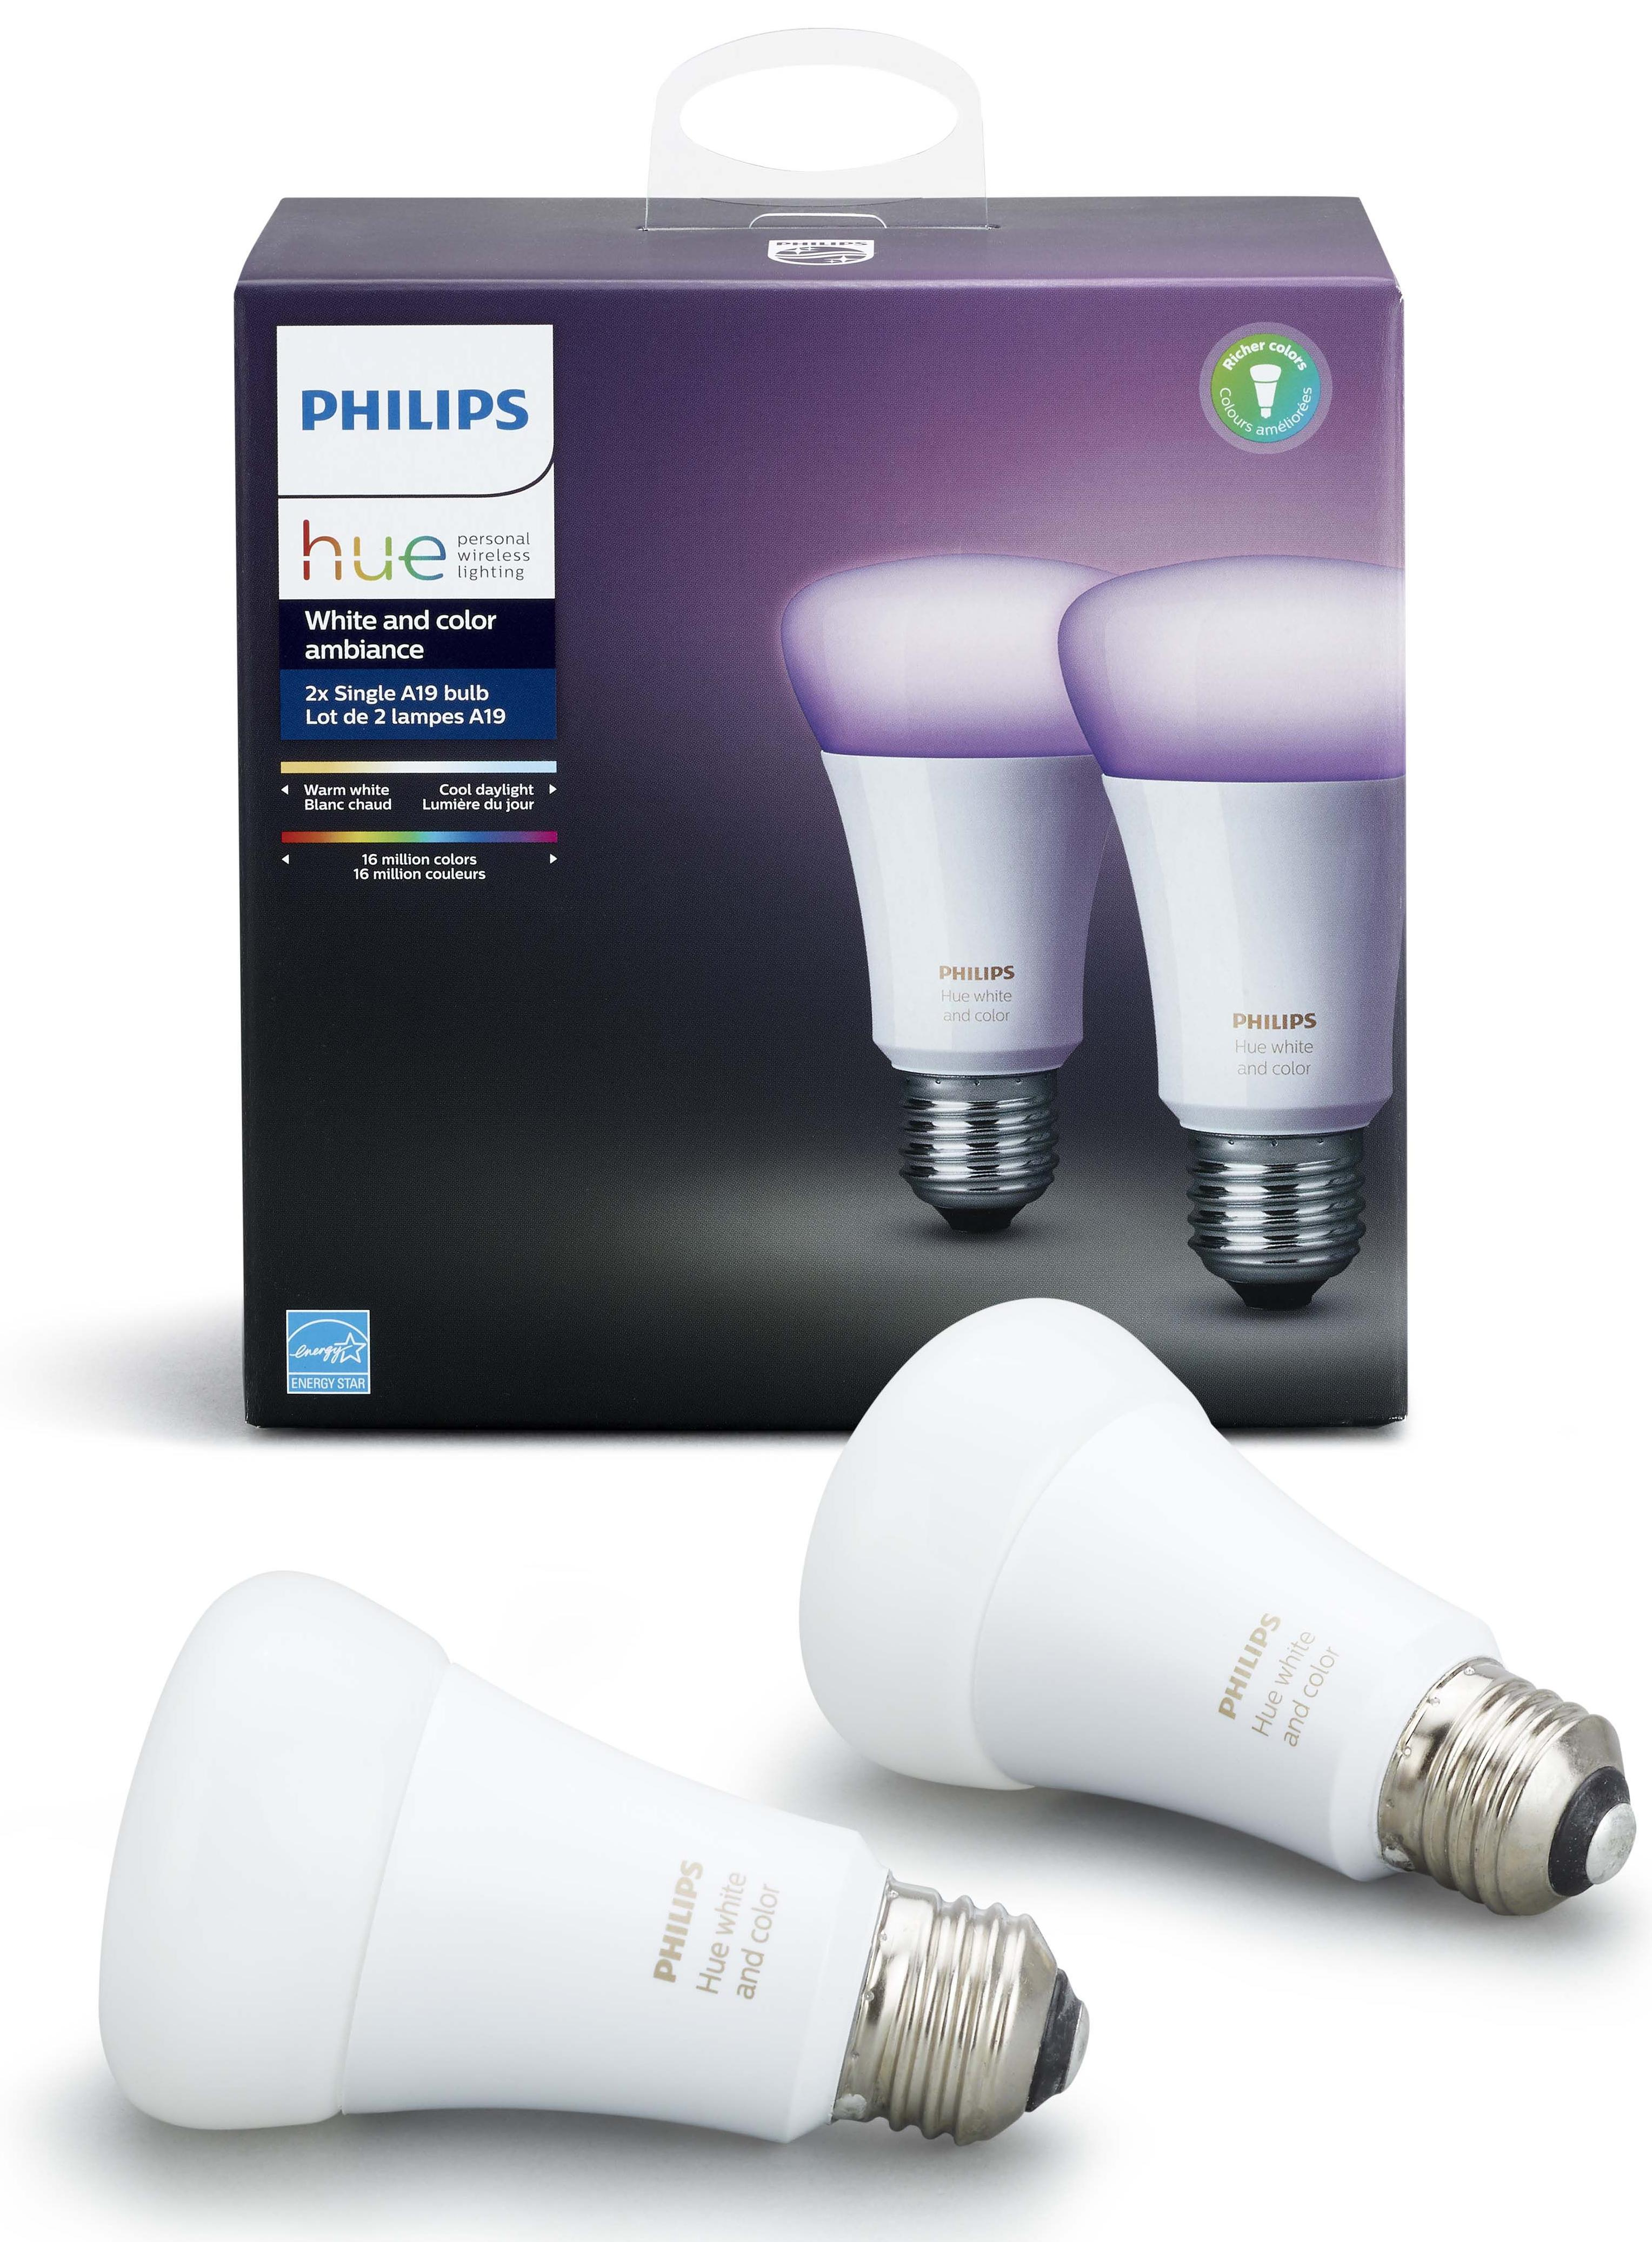 Умные лампы Philips Hue White and Color Ambiance E27 (734673T) 2шт.